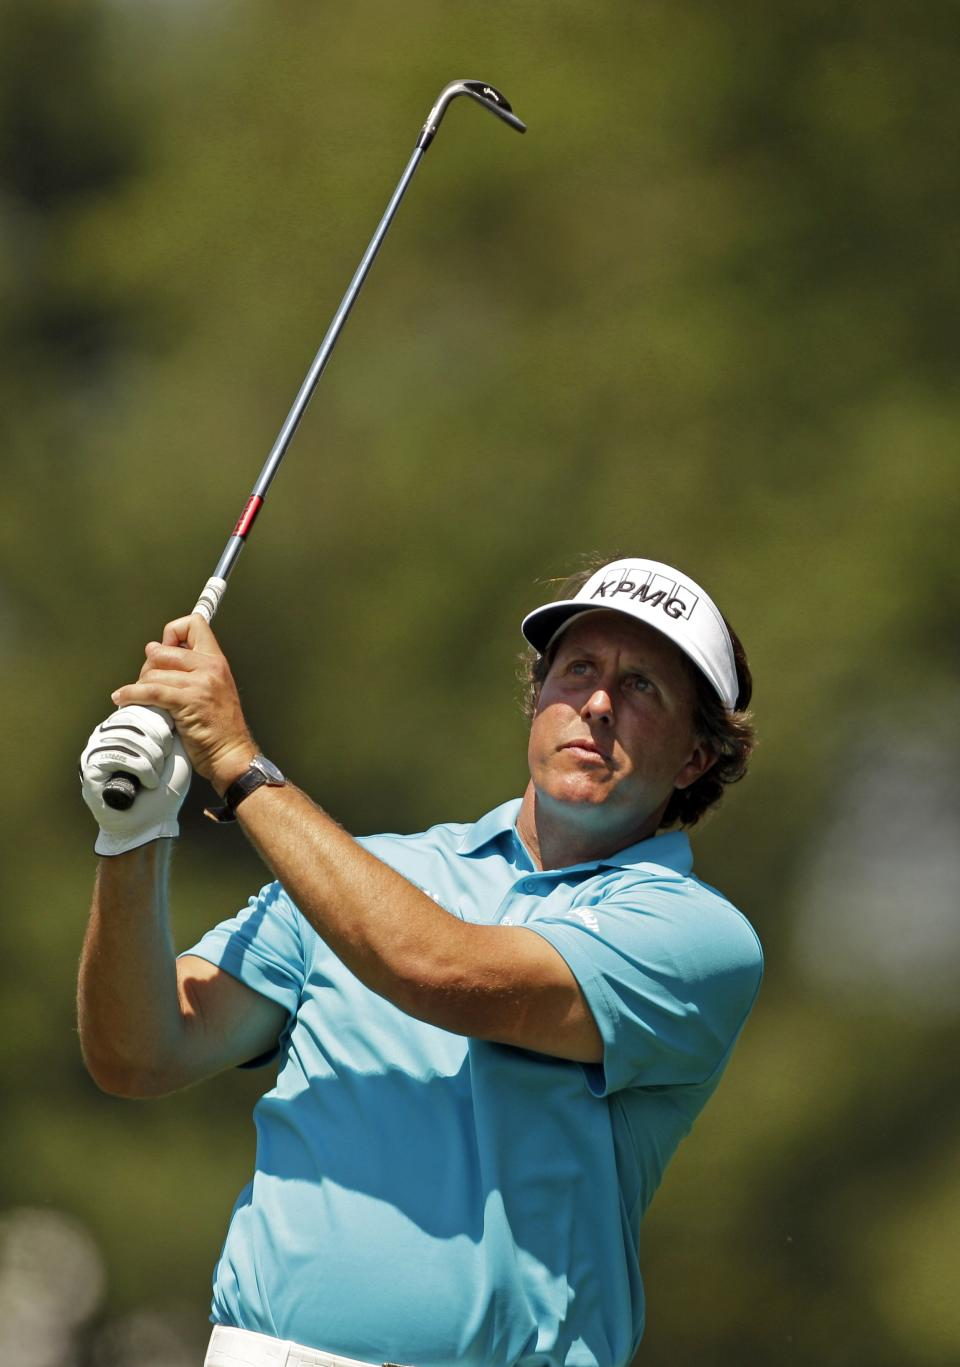 Phil Mickelson watches his shot on the first fairway during the pro-am of the Wells Fargo Championship golf tournament at Quail Hollow Club in Charlotte, N.C., Wednesday, May 2, 2012. (AP Photo/Chuck Burton)